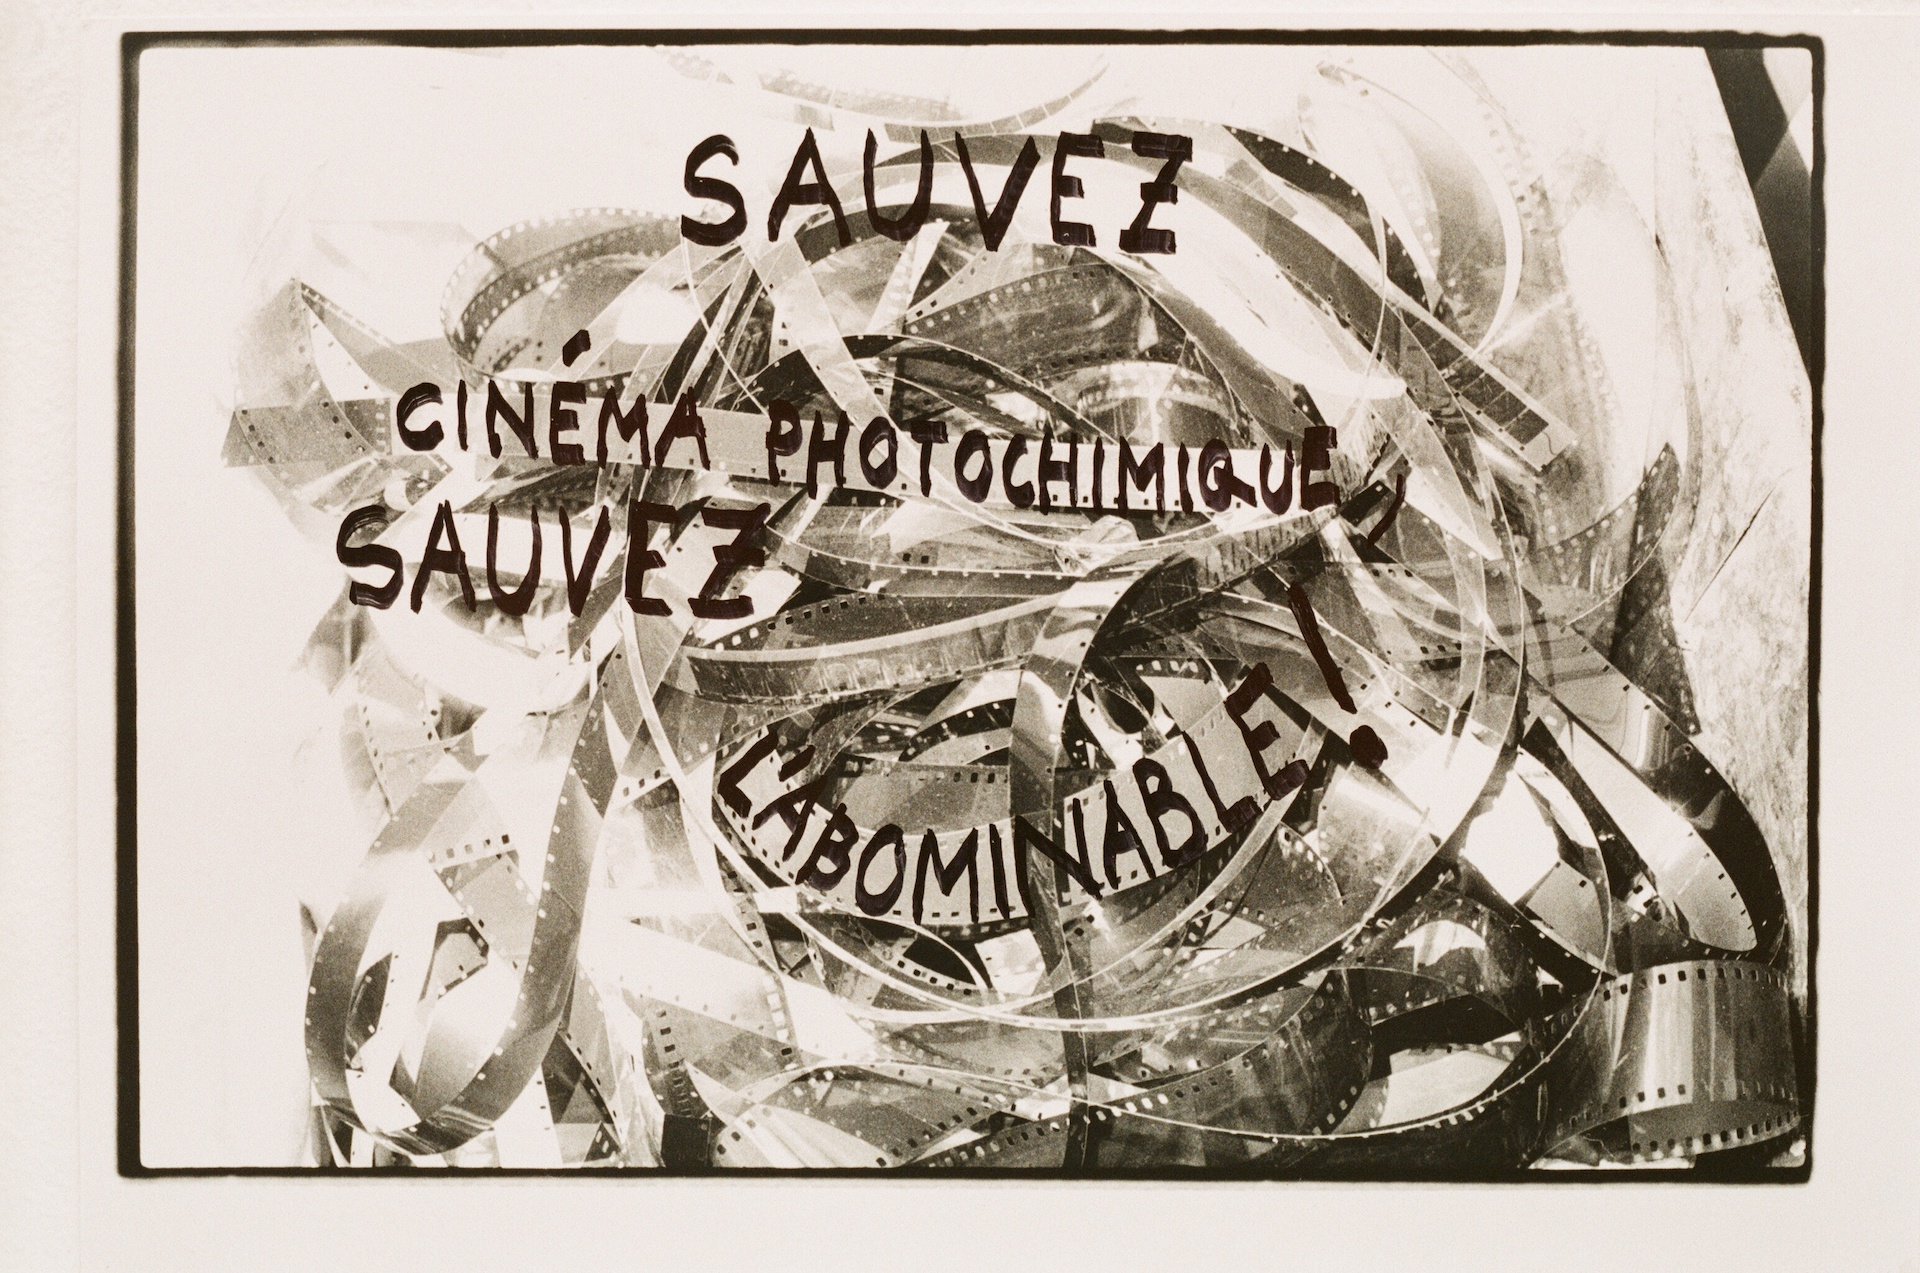 Sauvez l'Abominable (Save l'Abominable)